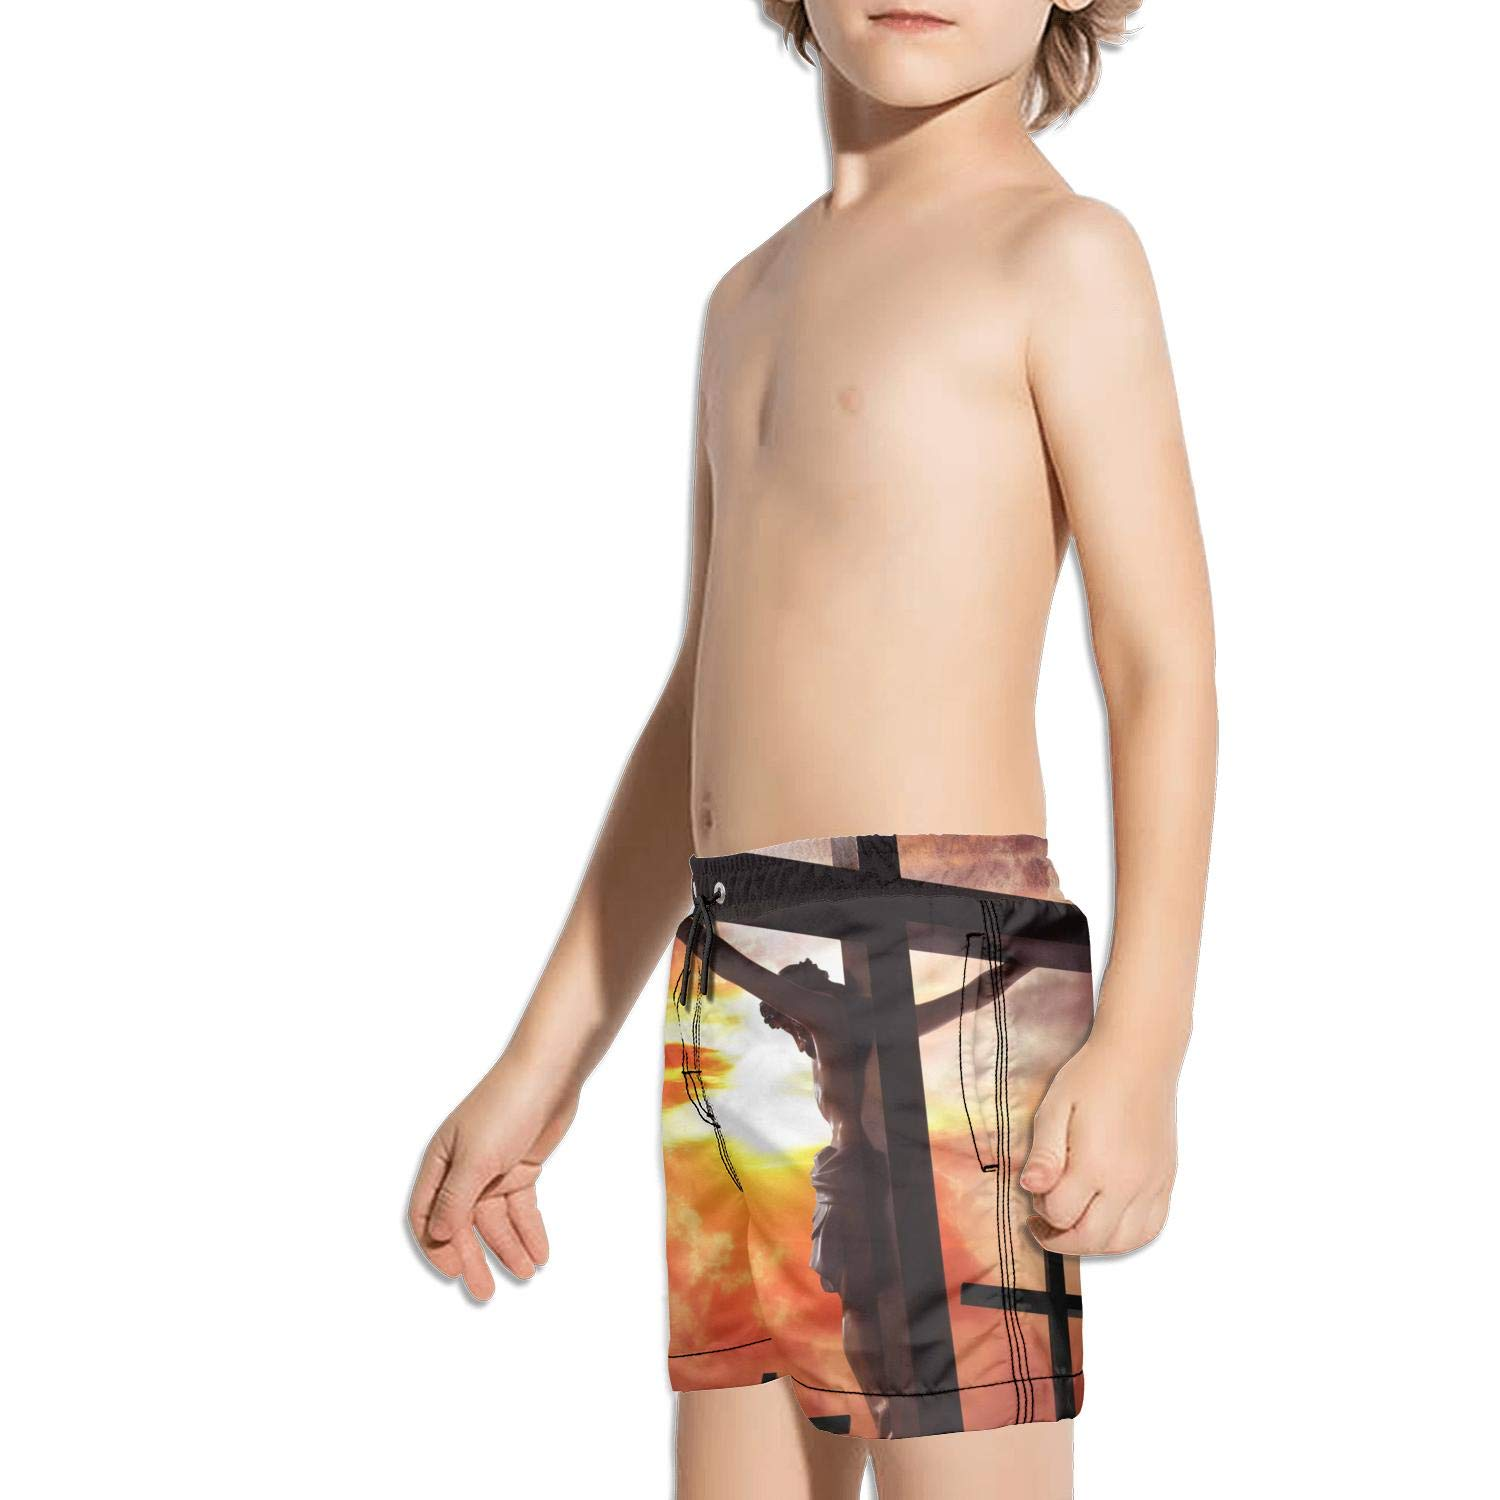 Ash Wednesday Jesus Cross Poster Kids Beach Fully Lined Drawstring Swimming Trunks Shorts